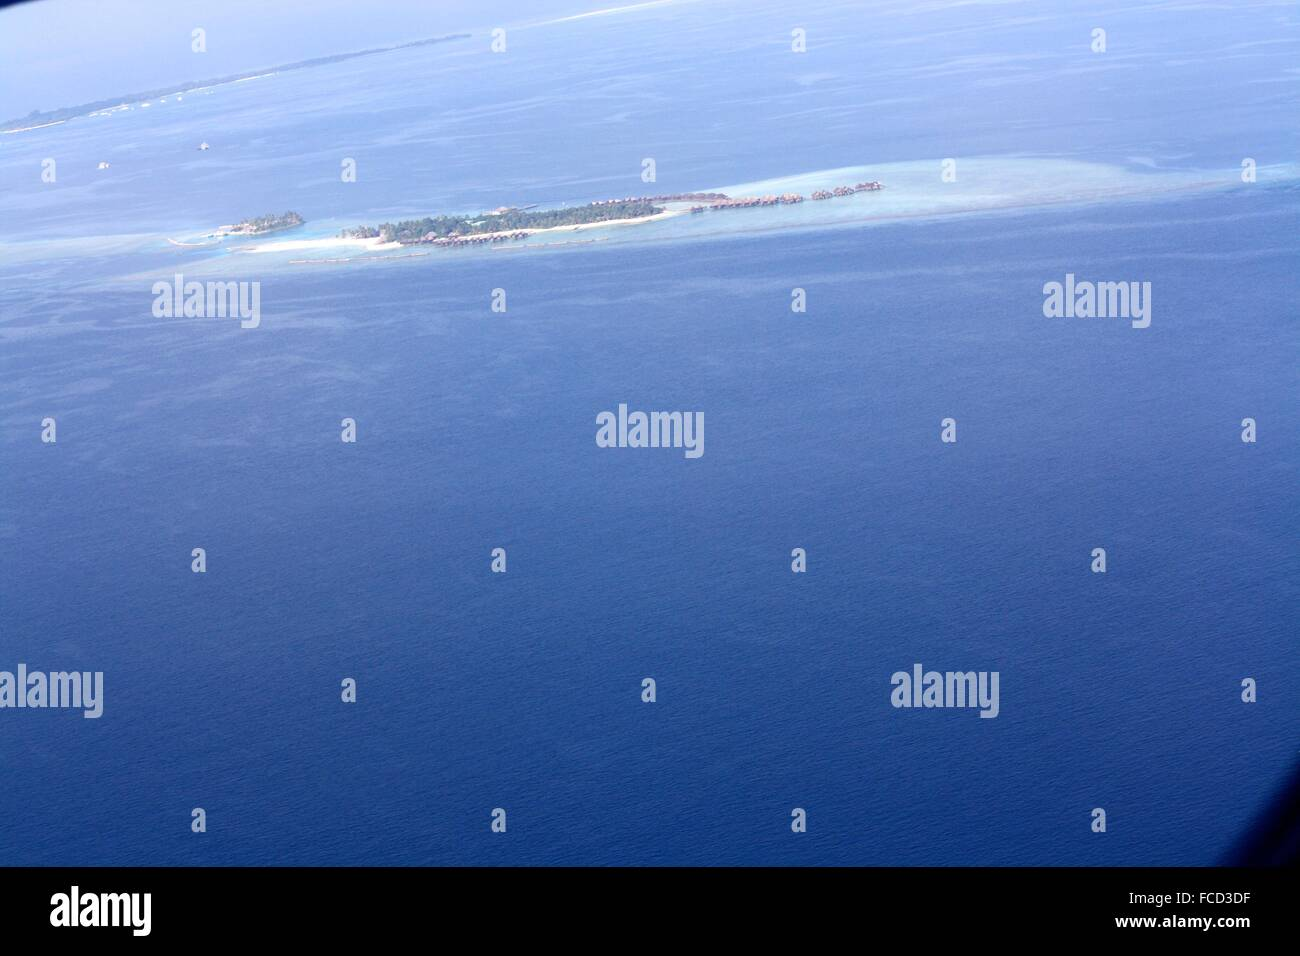 Panoramic View From The Airplane Window - Stock Image